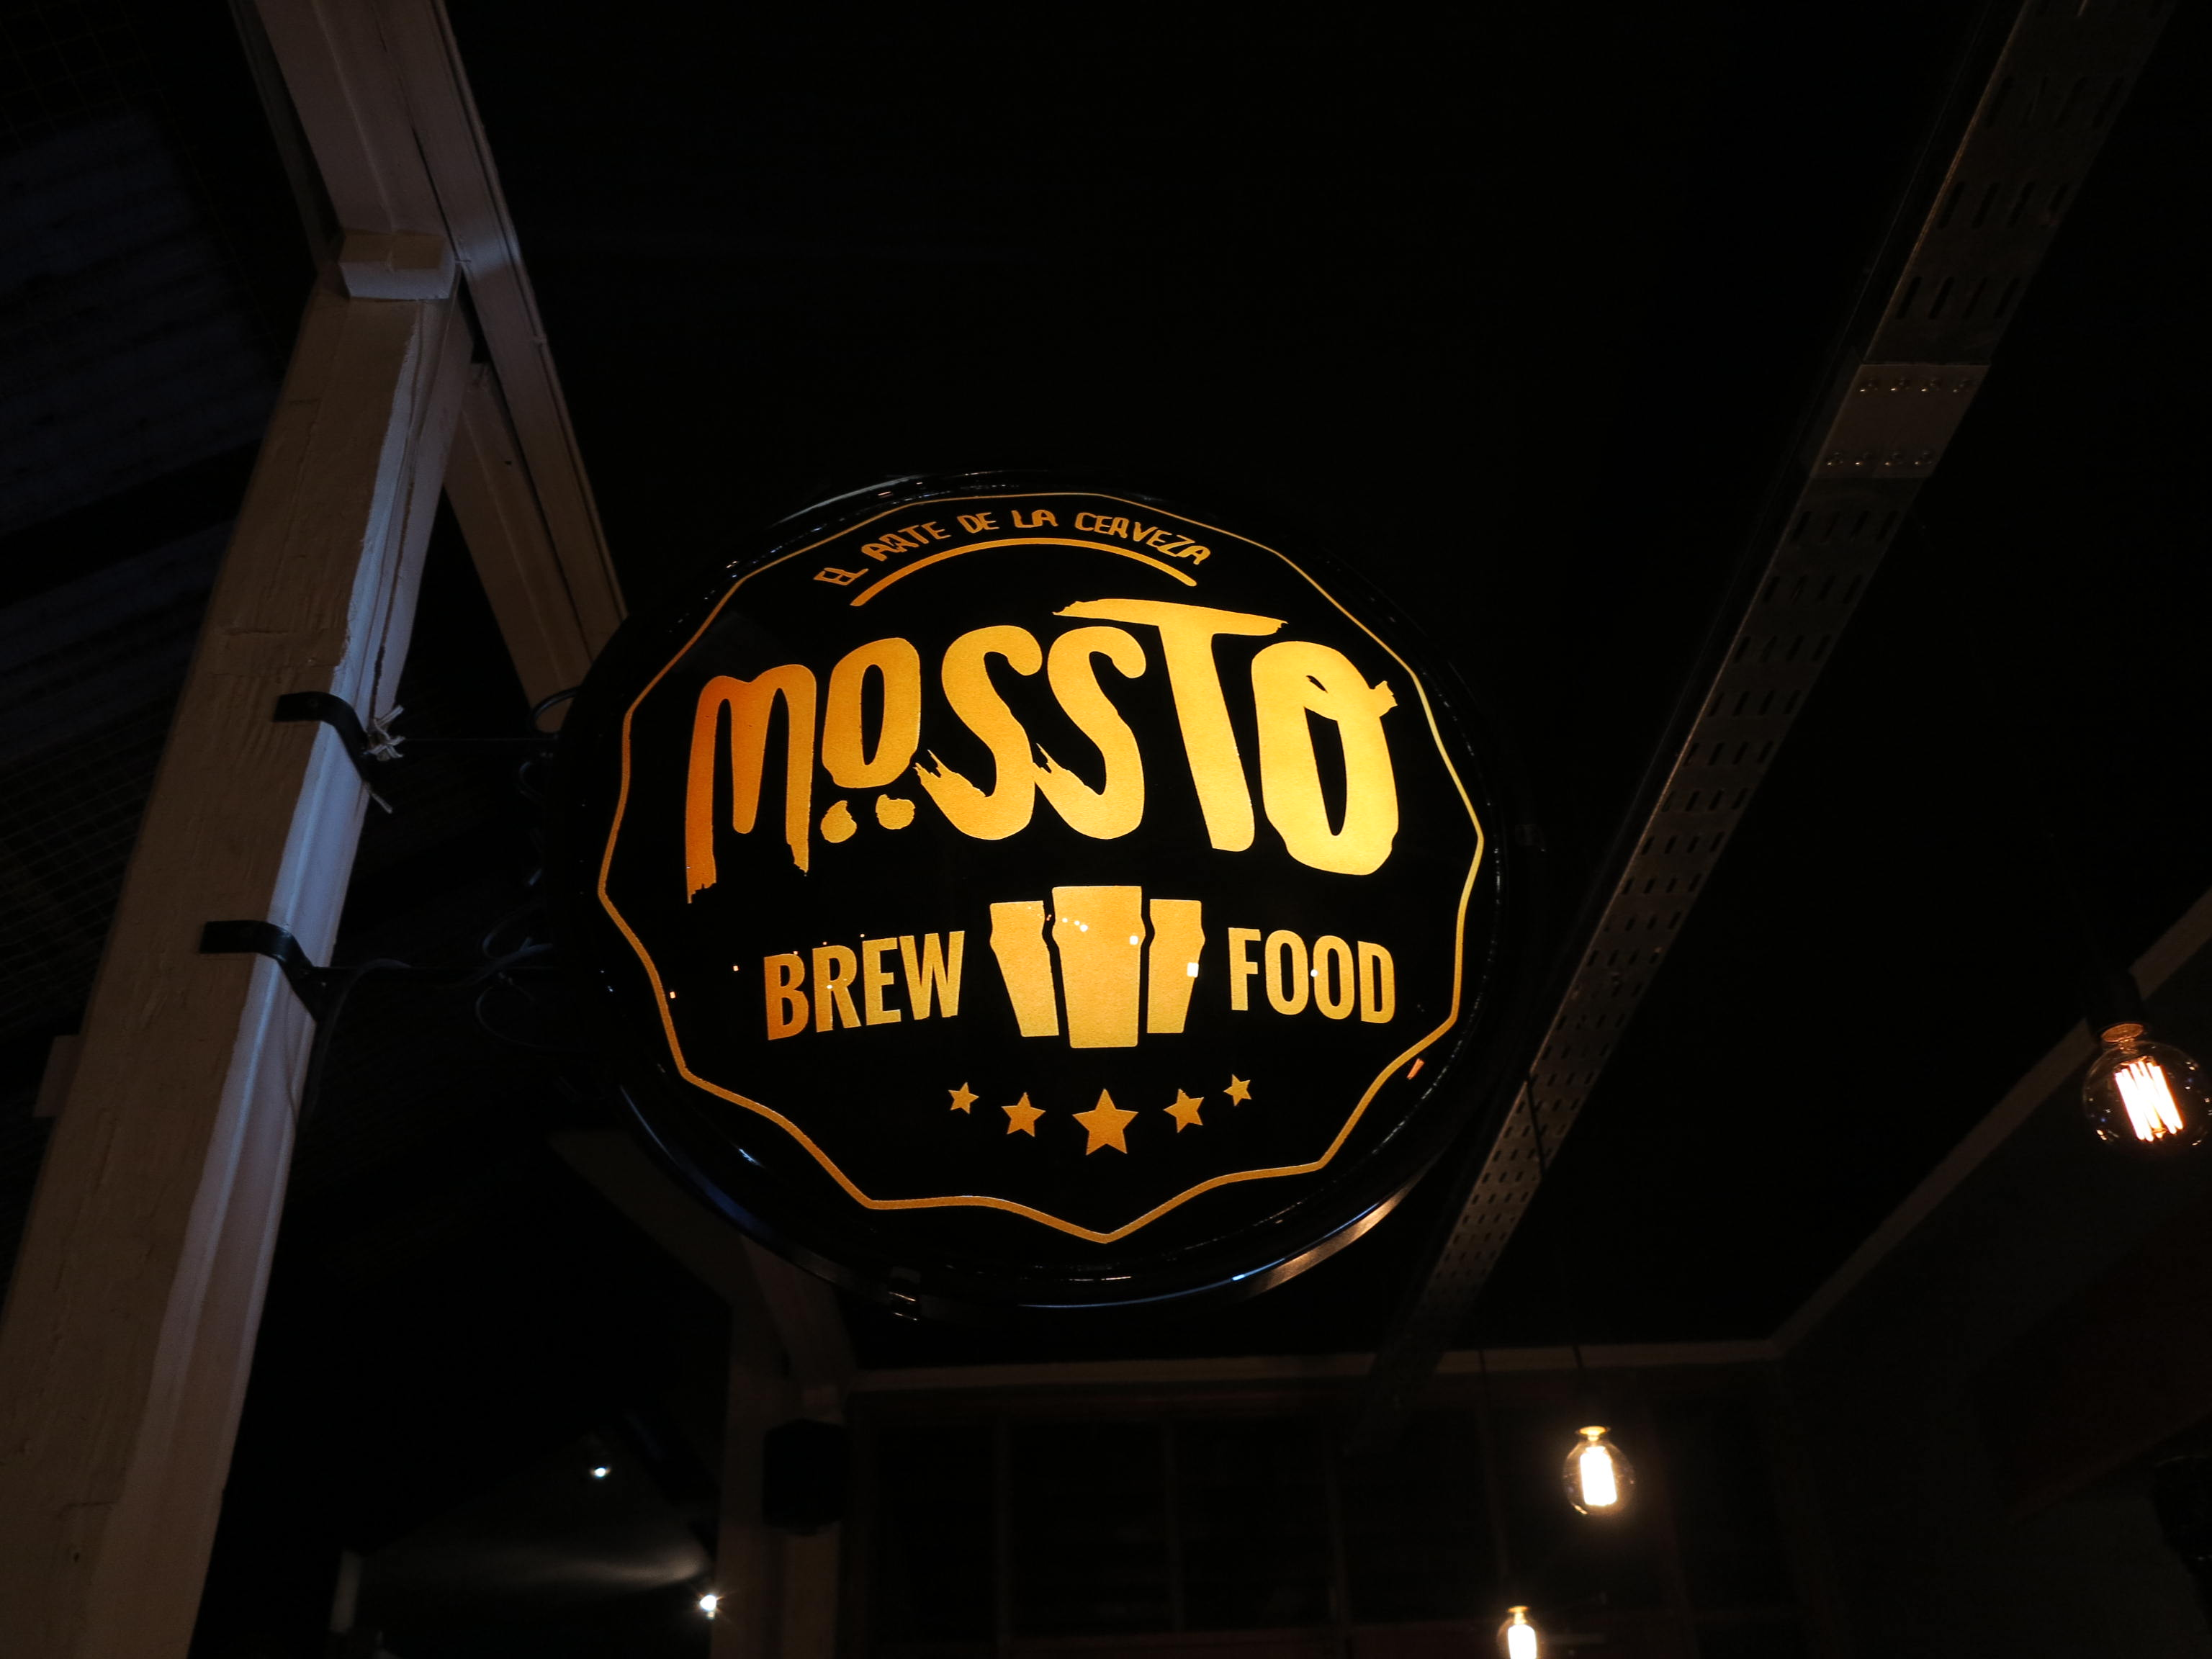 Mossto Brew Food_4